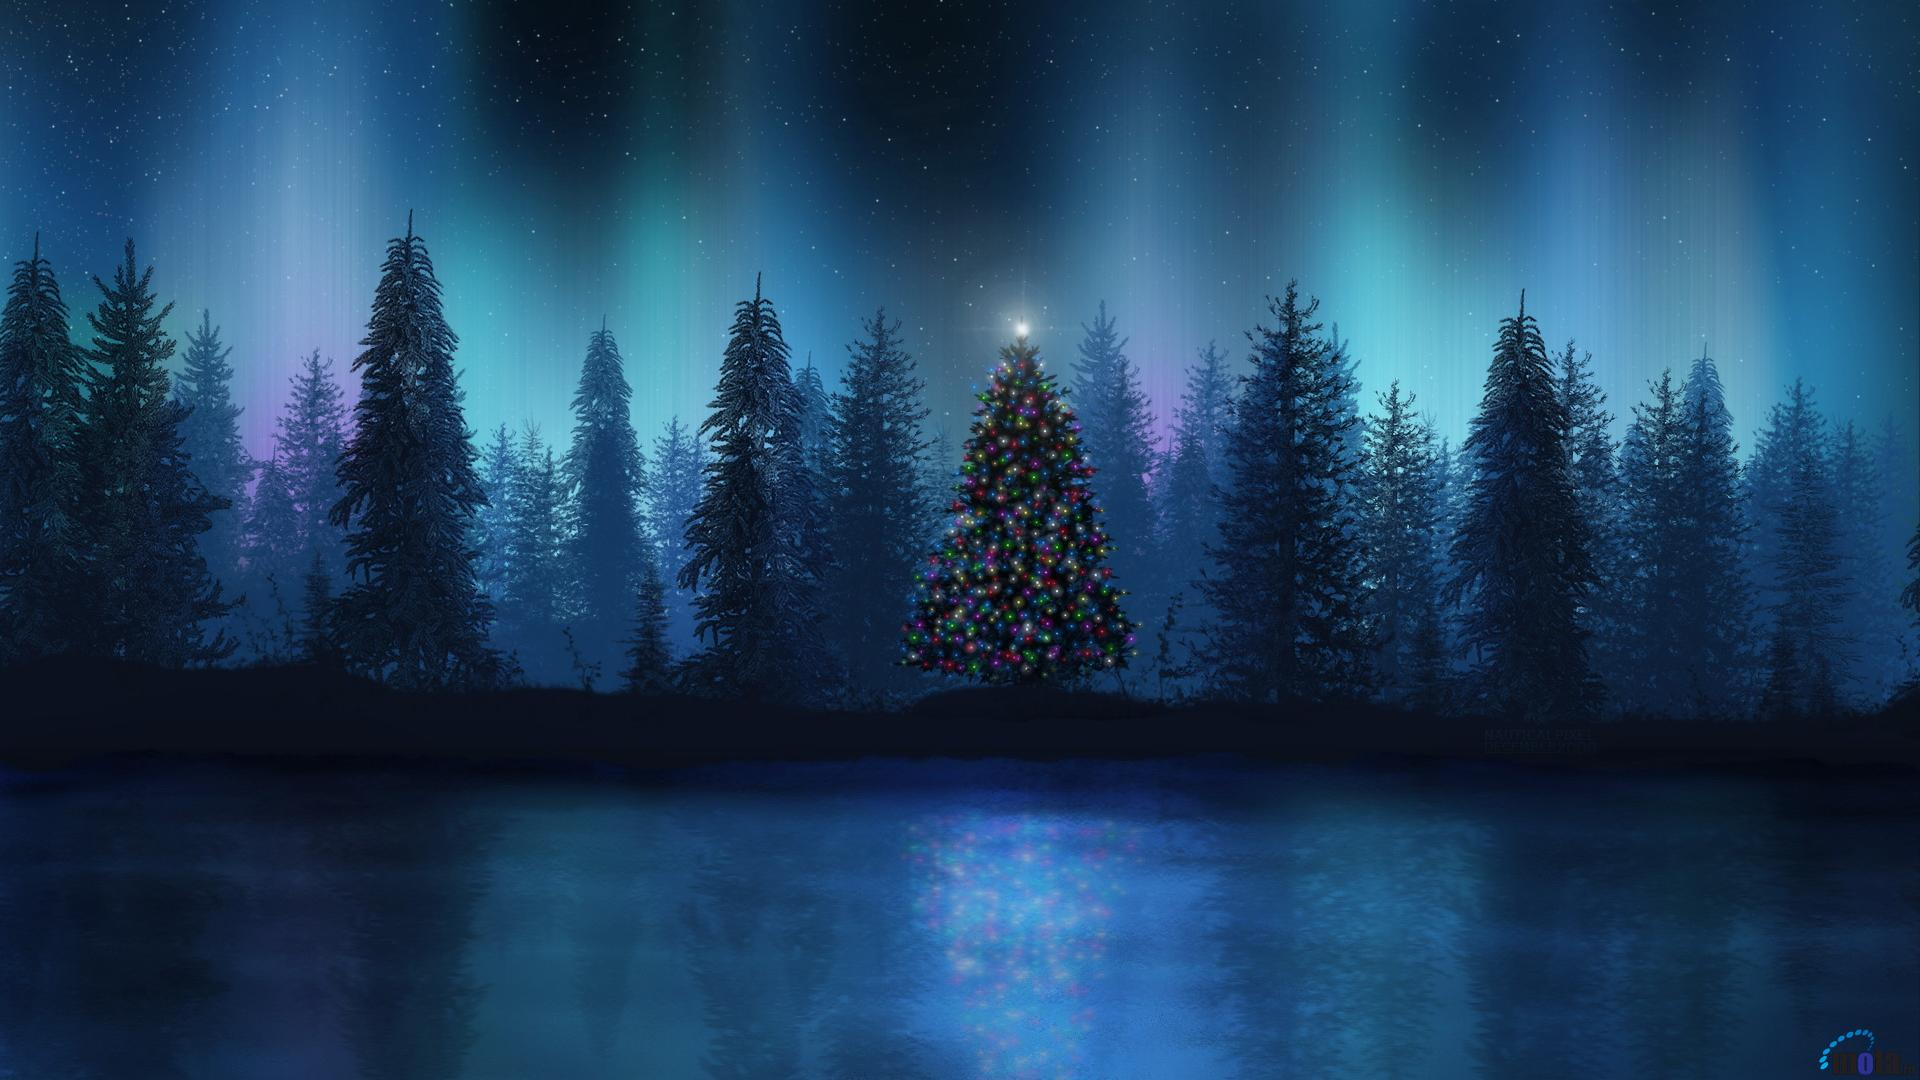 more wallpapers 2560x1600 christmas and new year 1920x1080 christmas 1920x1080